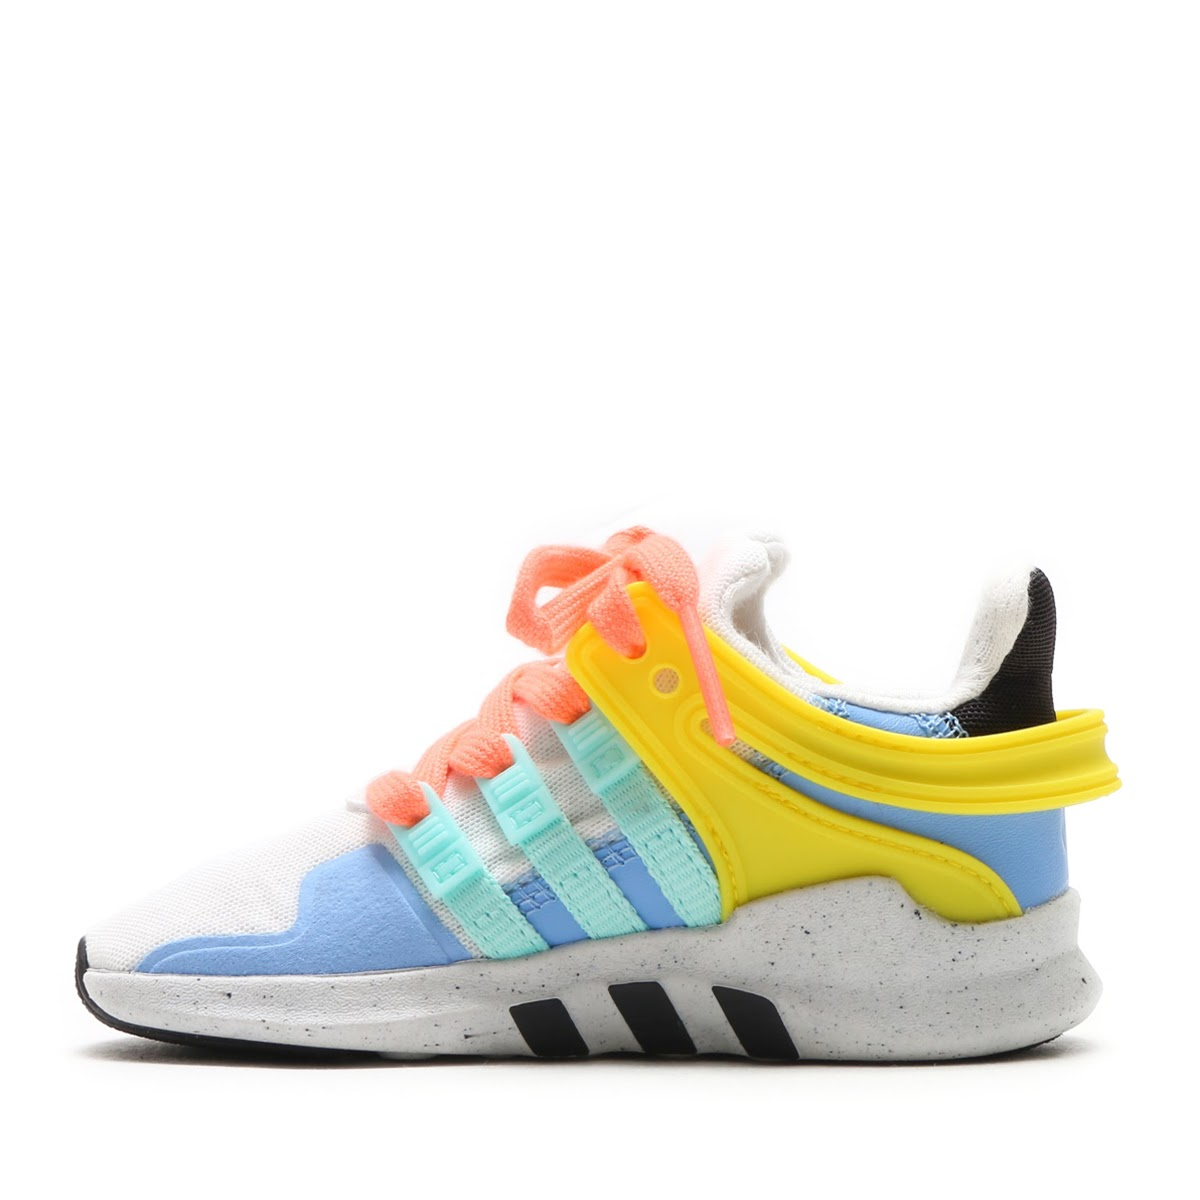 adidas Originals MINI RODINI EQT SUPPORTADV I MR I (アディダスオリジナルスミニロディーニ EQT support ADV I MR I) WhiteCore BlackFootwear White WhiteCore